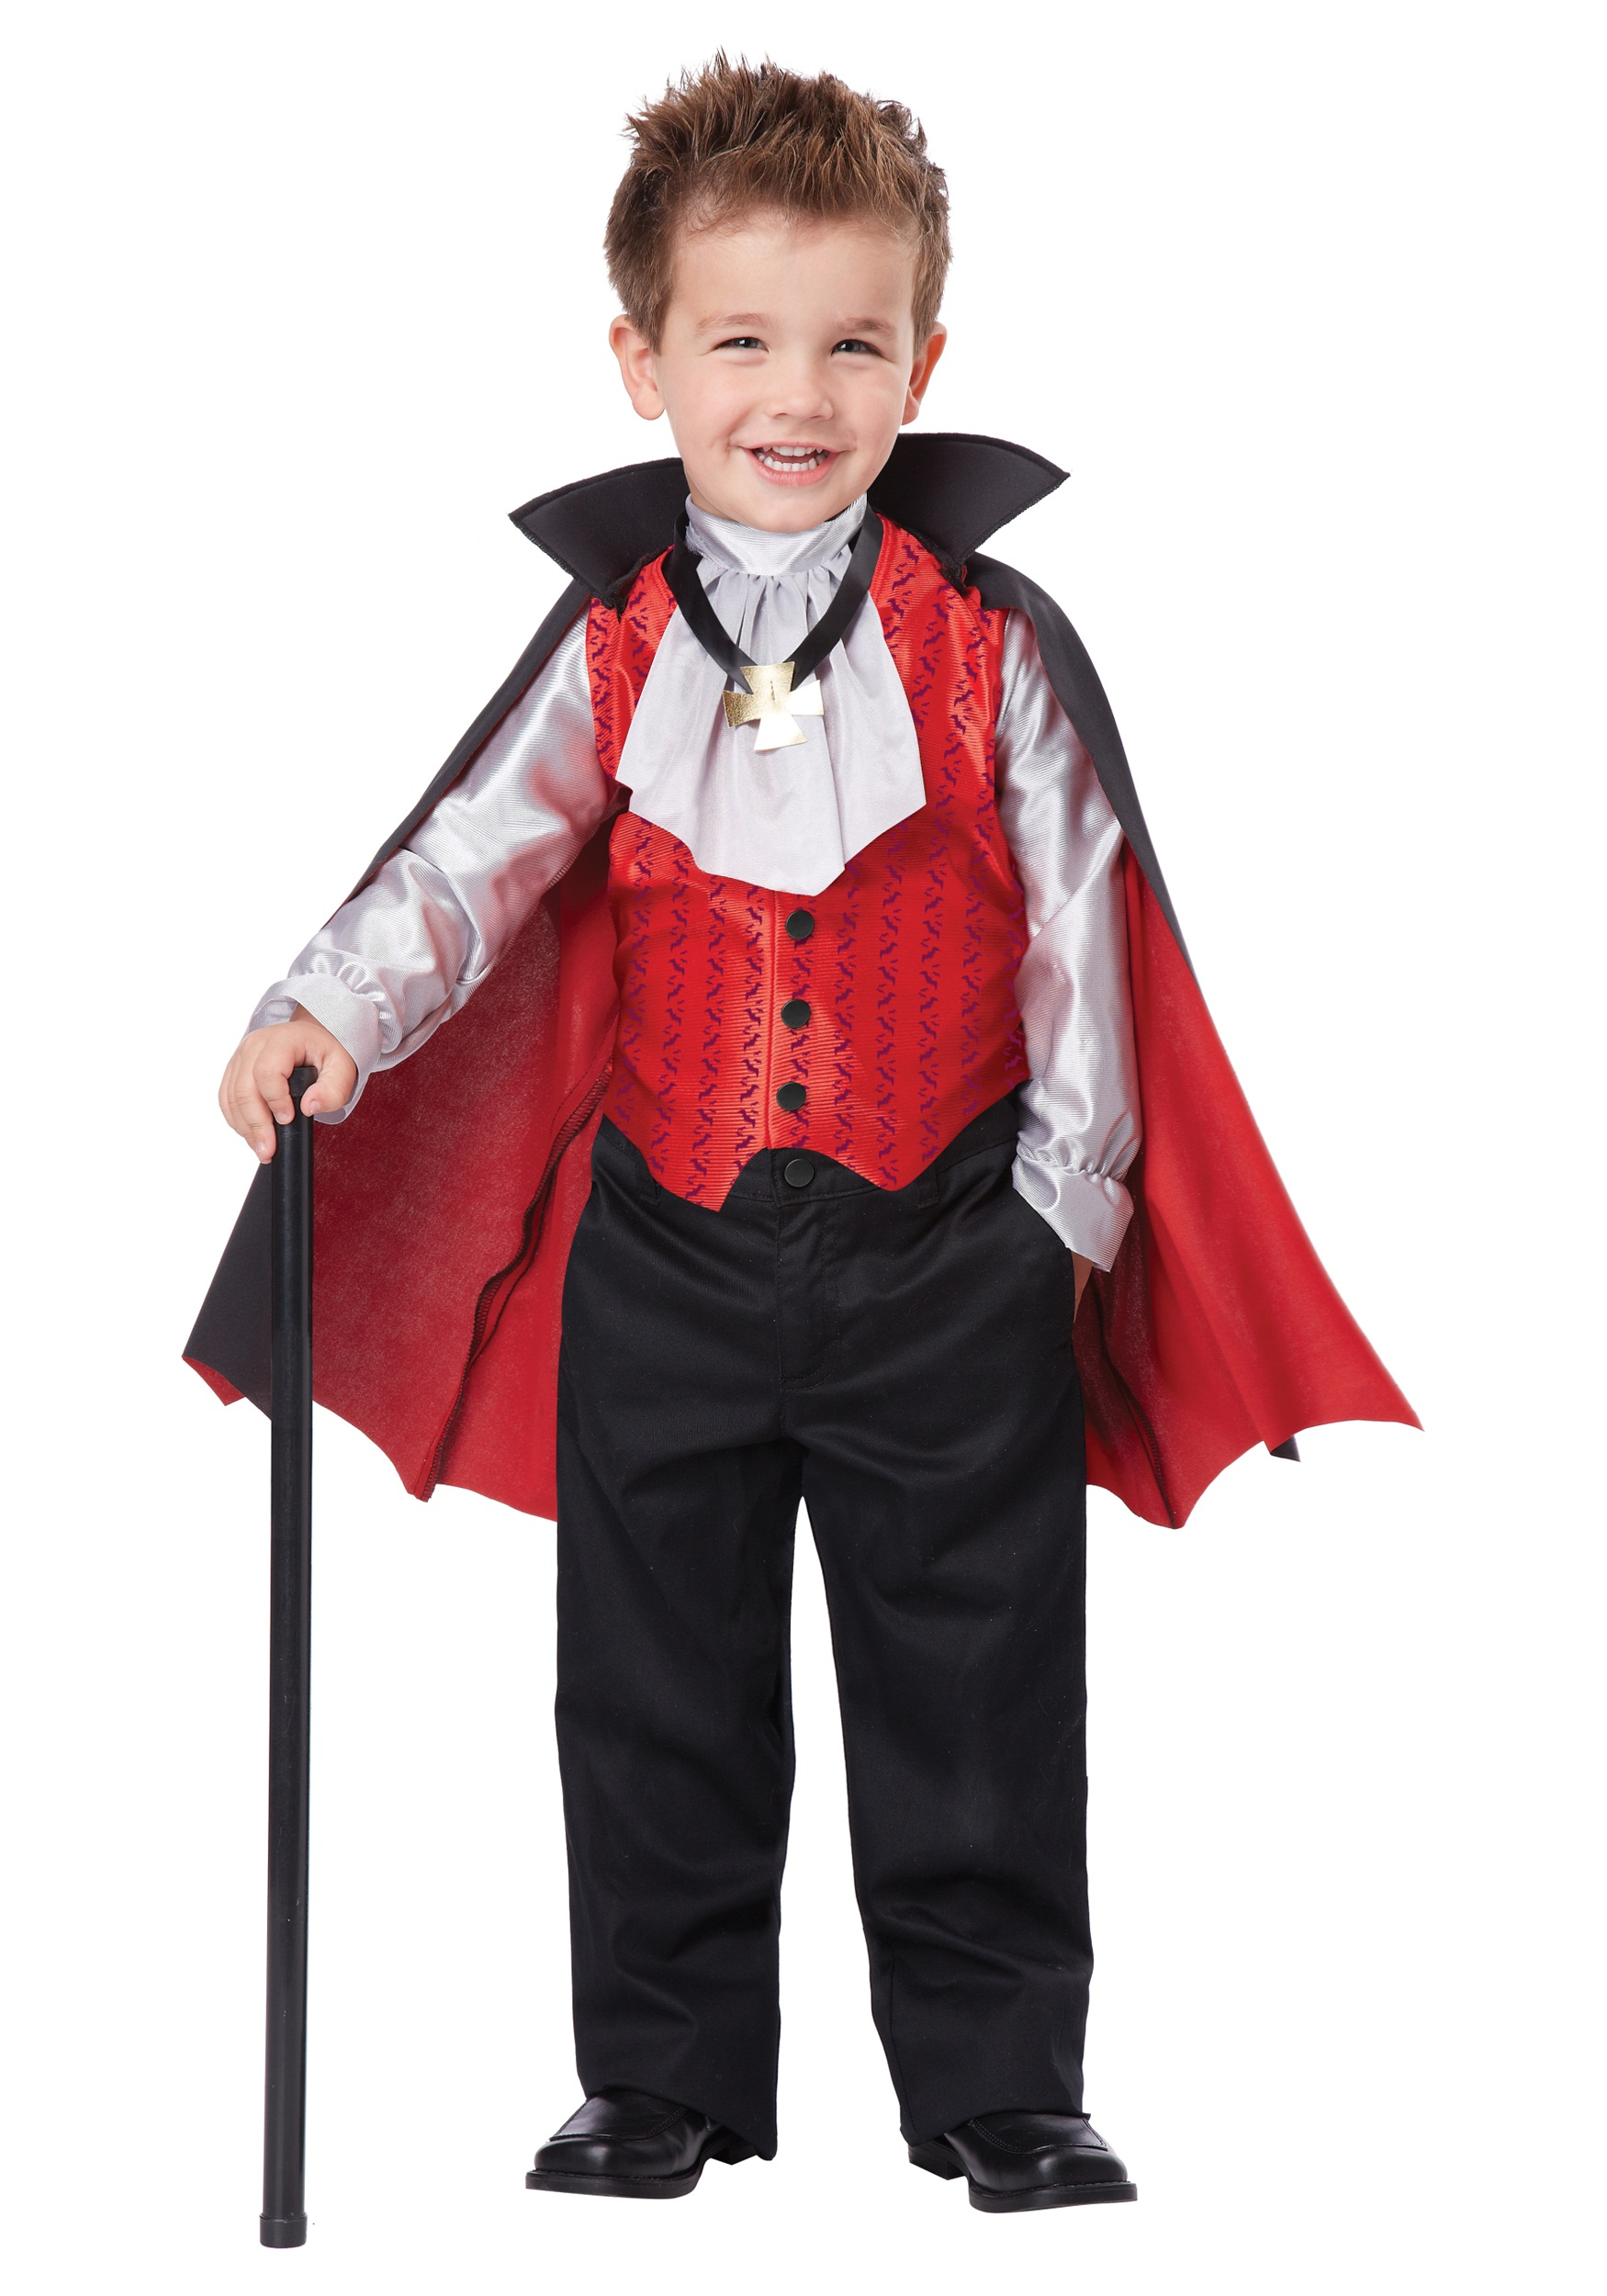 Toddler Dapper V&ire Costume  sc 1 st  Halloween Costumes & Toddler Dapper Vampire Costume - Halloween Costumes